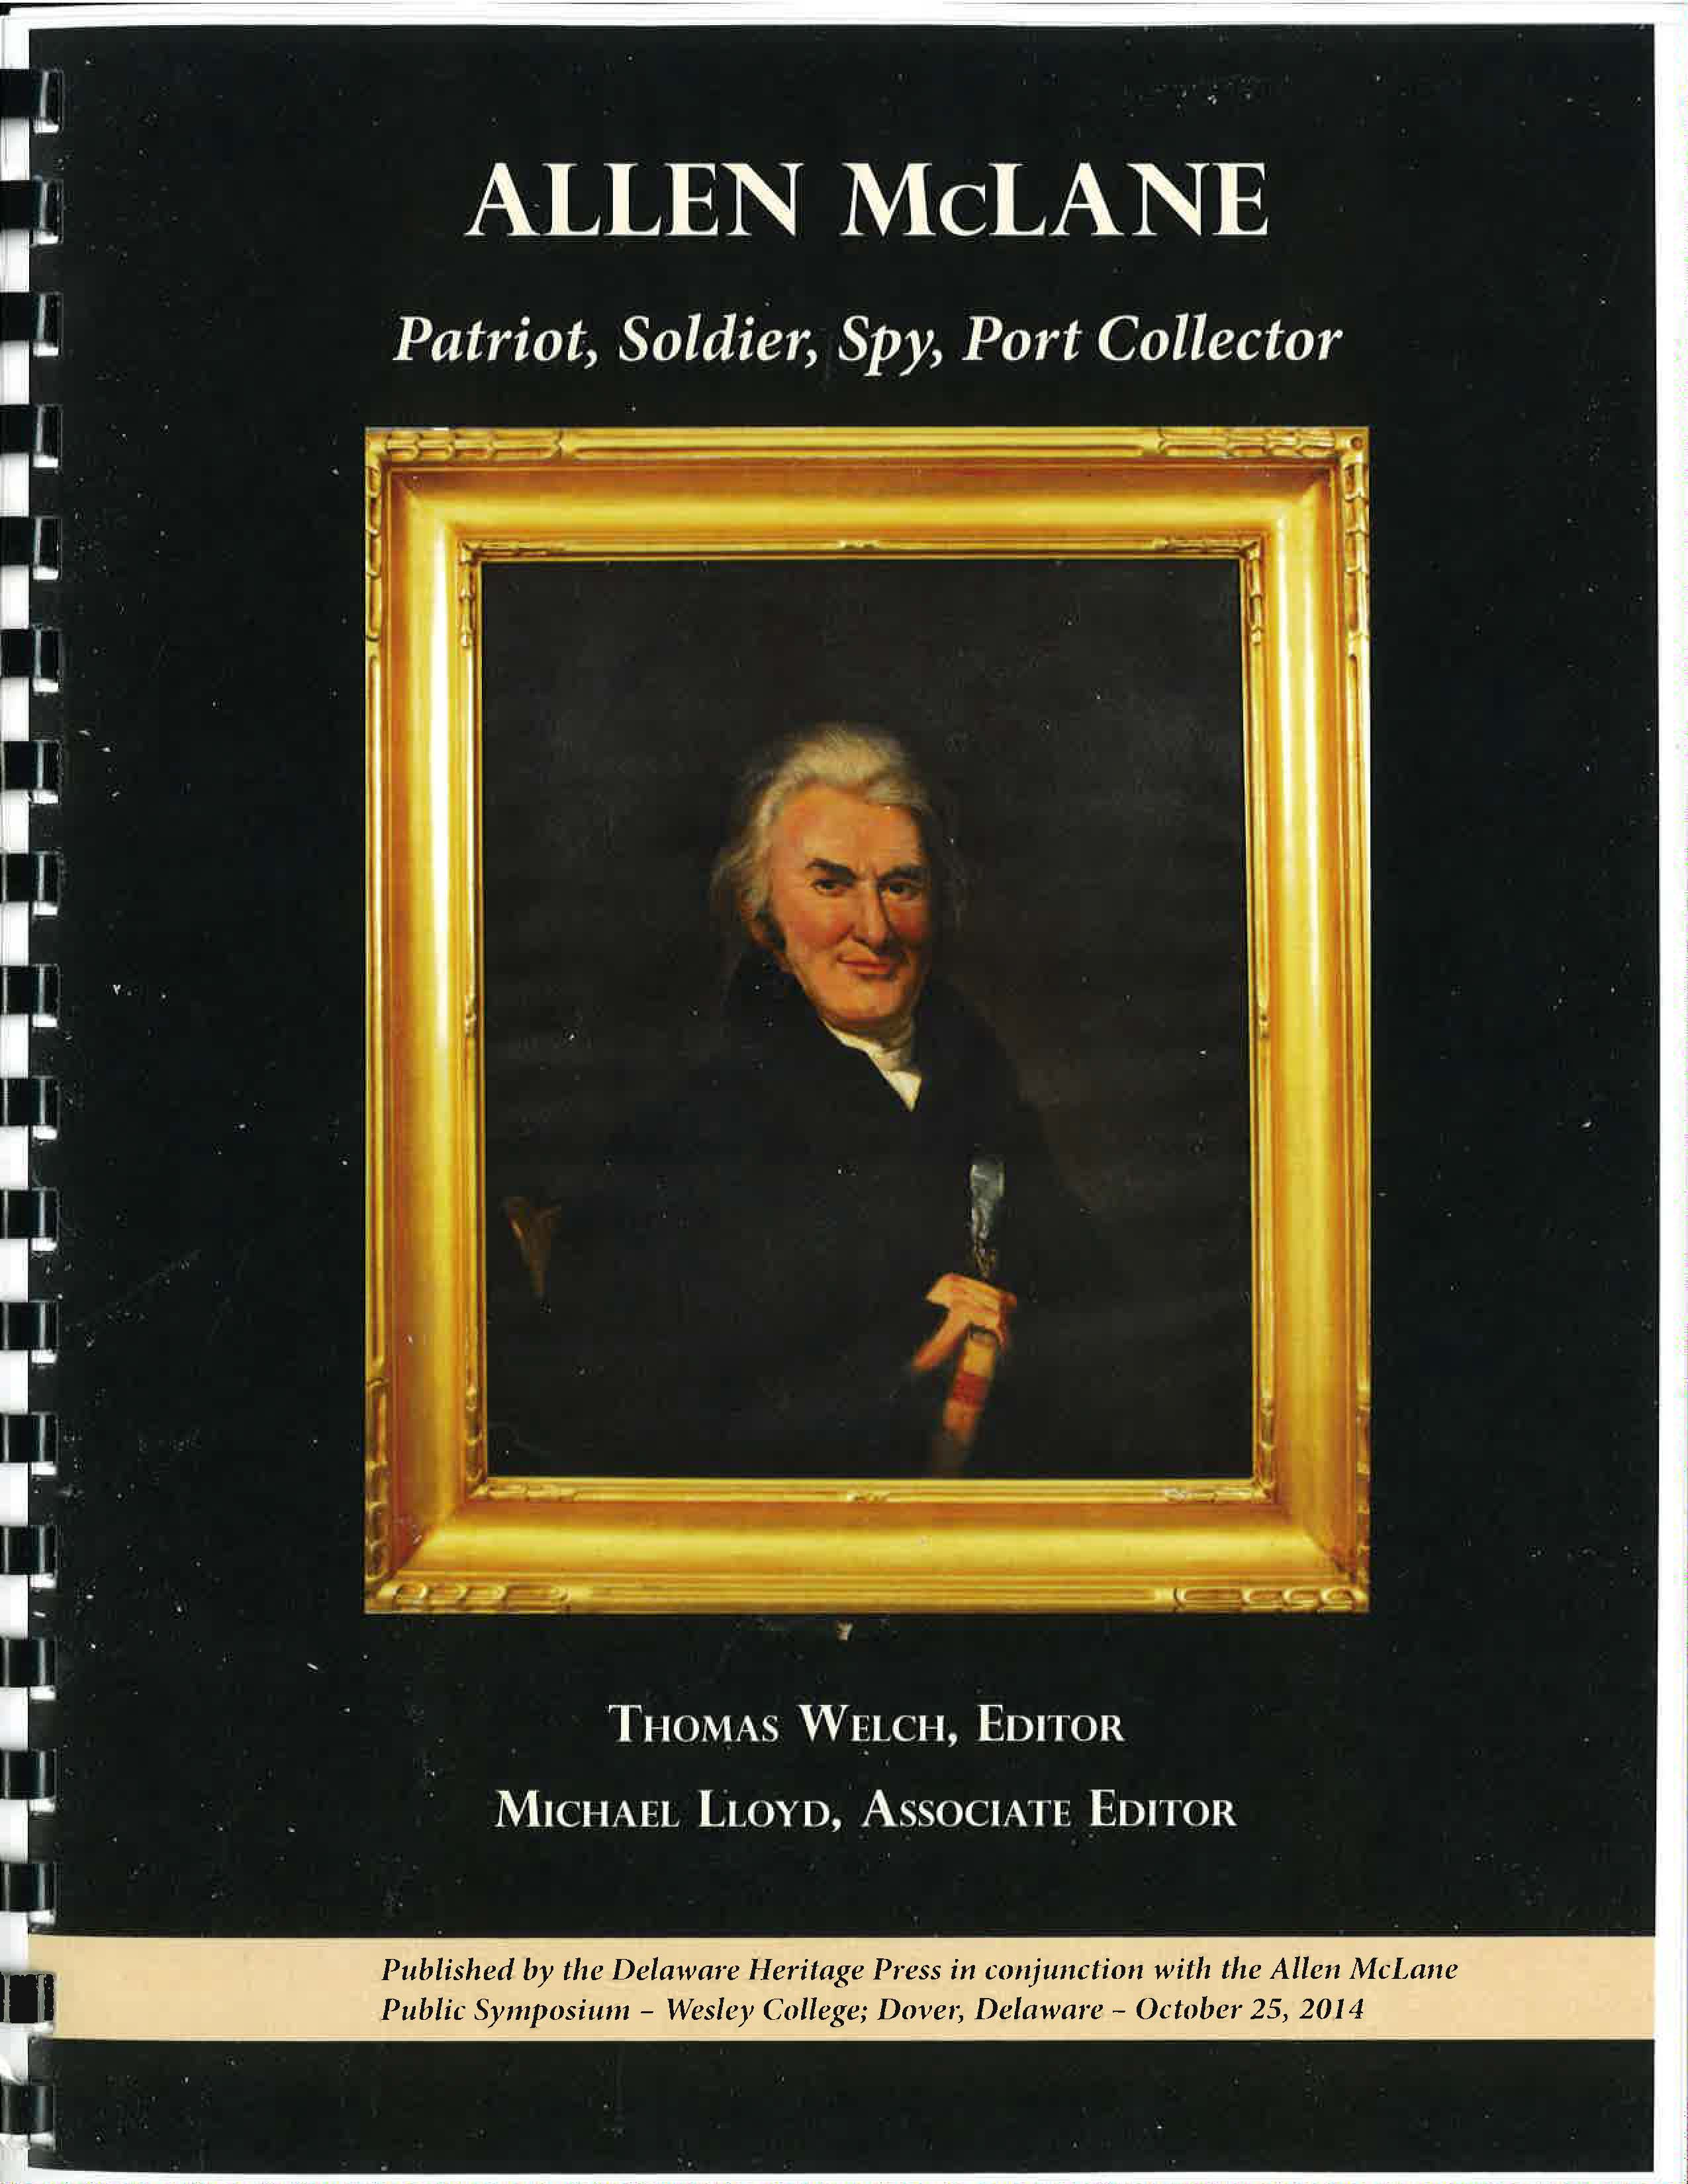 Allen McLane Patroit, Soldier, Spy, Port Collector, by Thomas Welch (Editor) and Michael Lloyd (Assoc. Editor, 2014, 132 pp., COMB BINDED. Prices reflect the cost of the book PLUS S&H fee of $3.00.